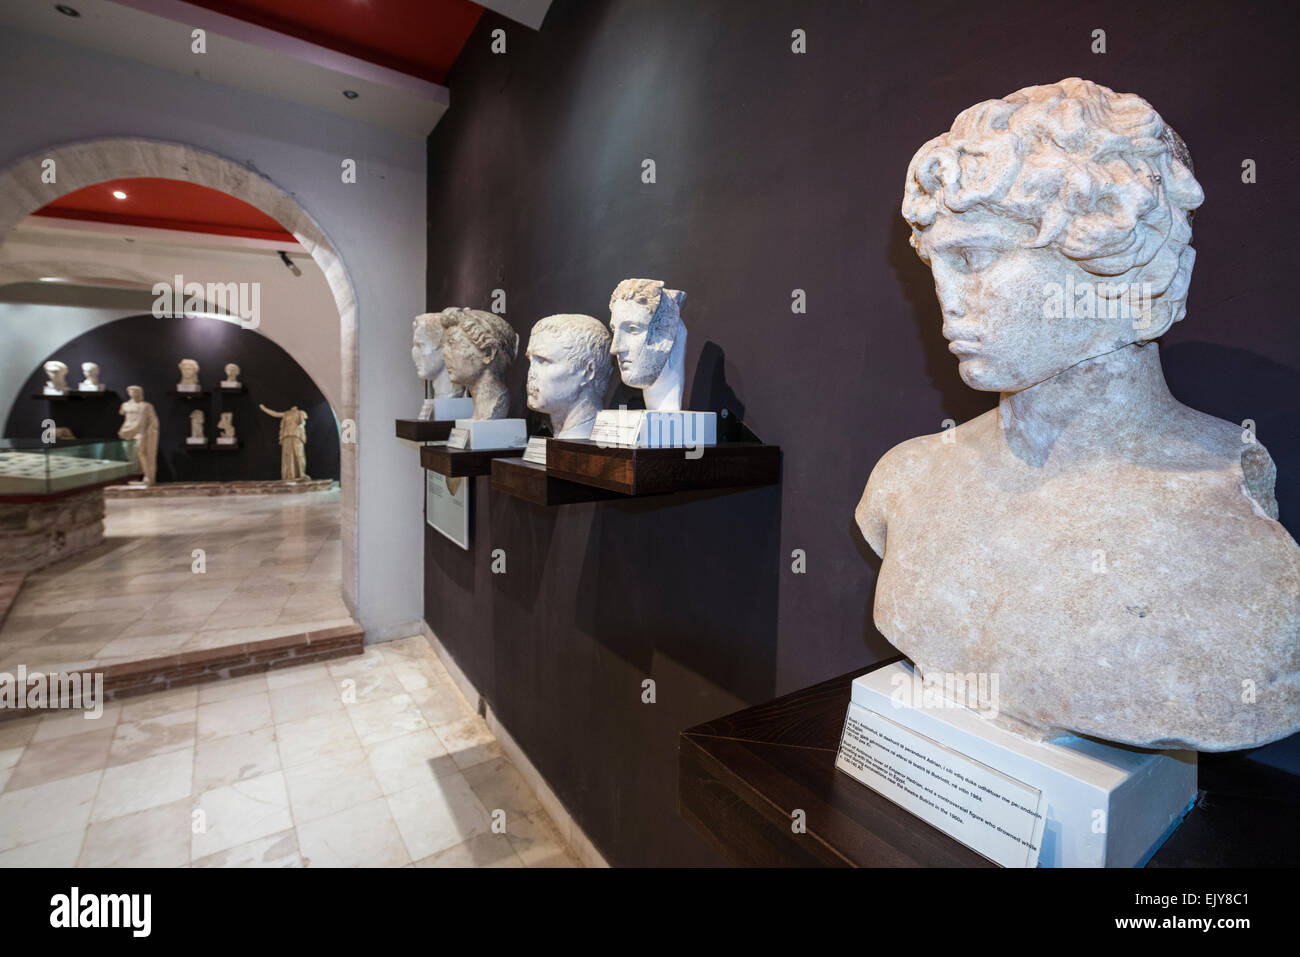 Roman busts on display at the Museum at Ancient Butrint, southern Albania. - Stock Image